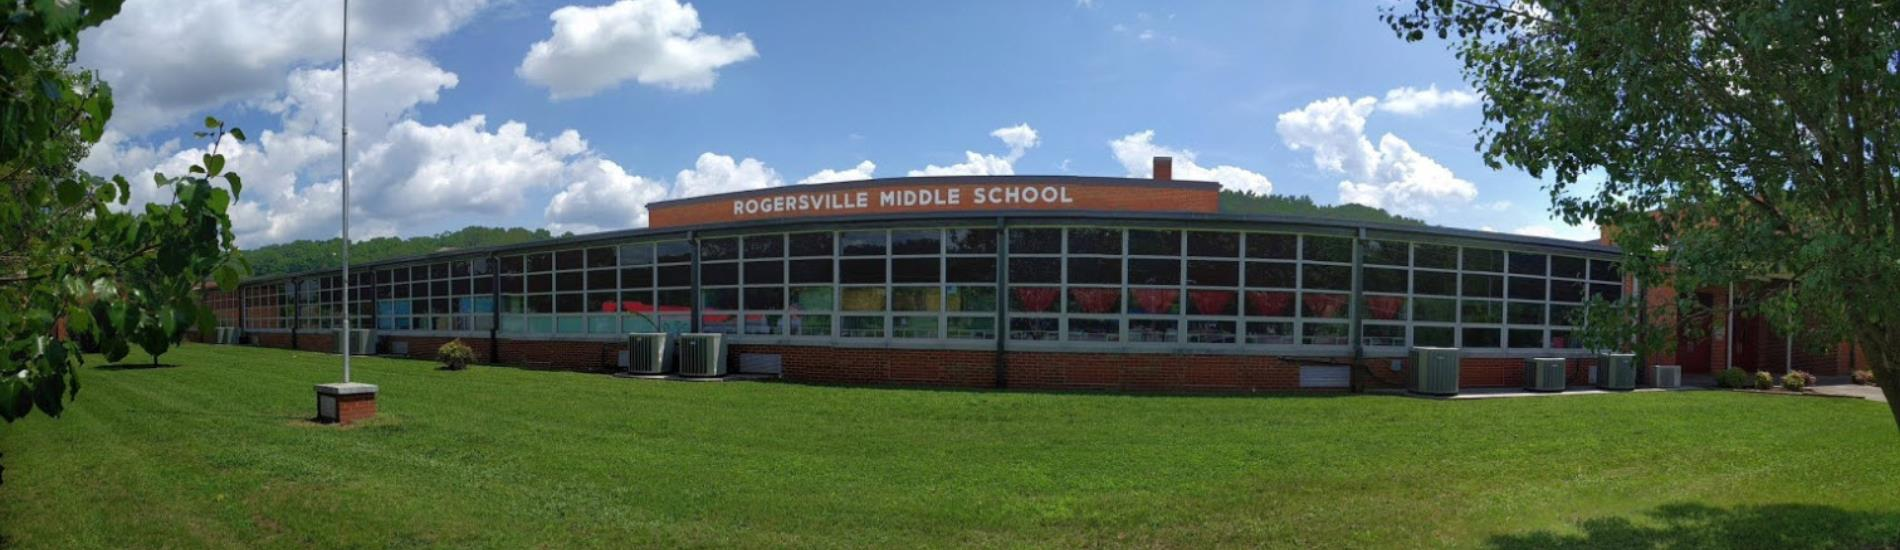 rogersville middle school building